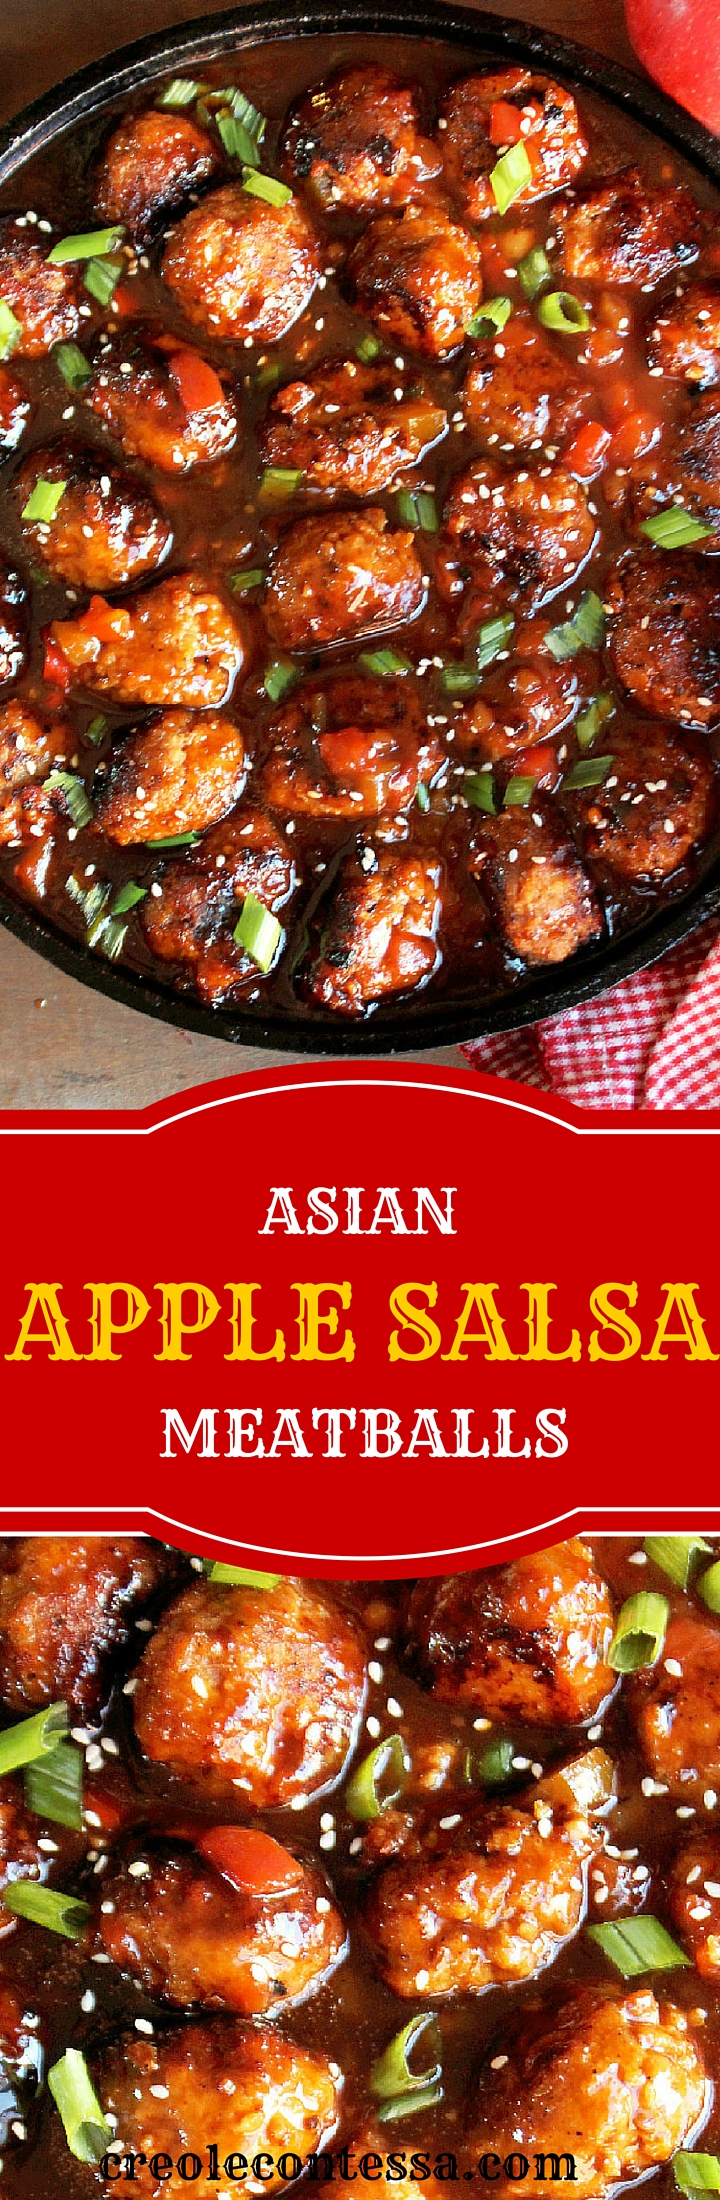 Asian Apple Salsa Meatballs -Creole Contessa